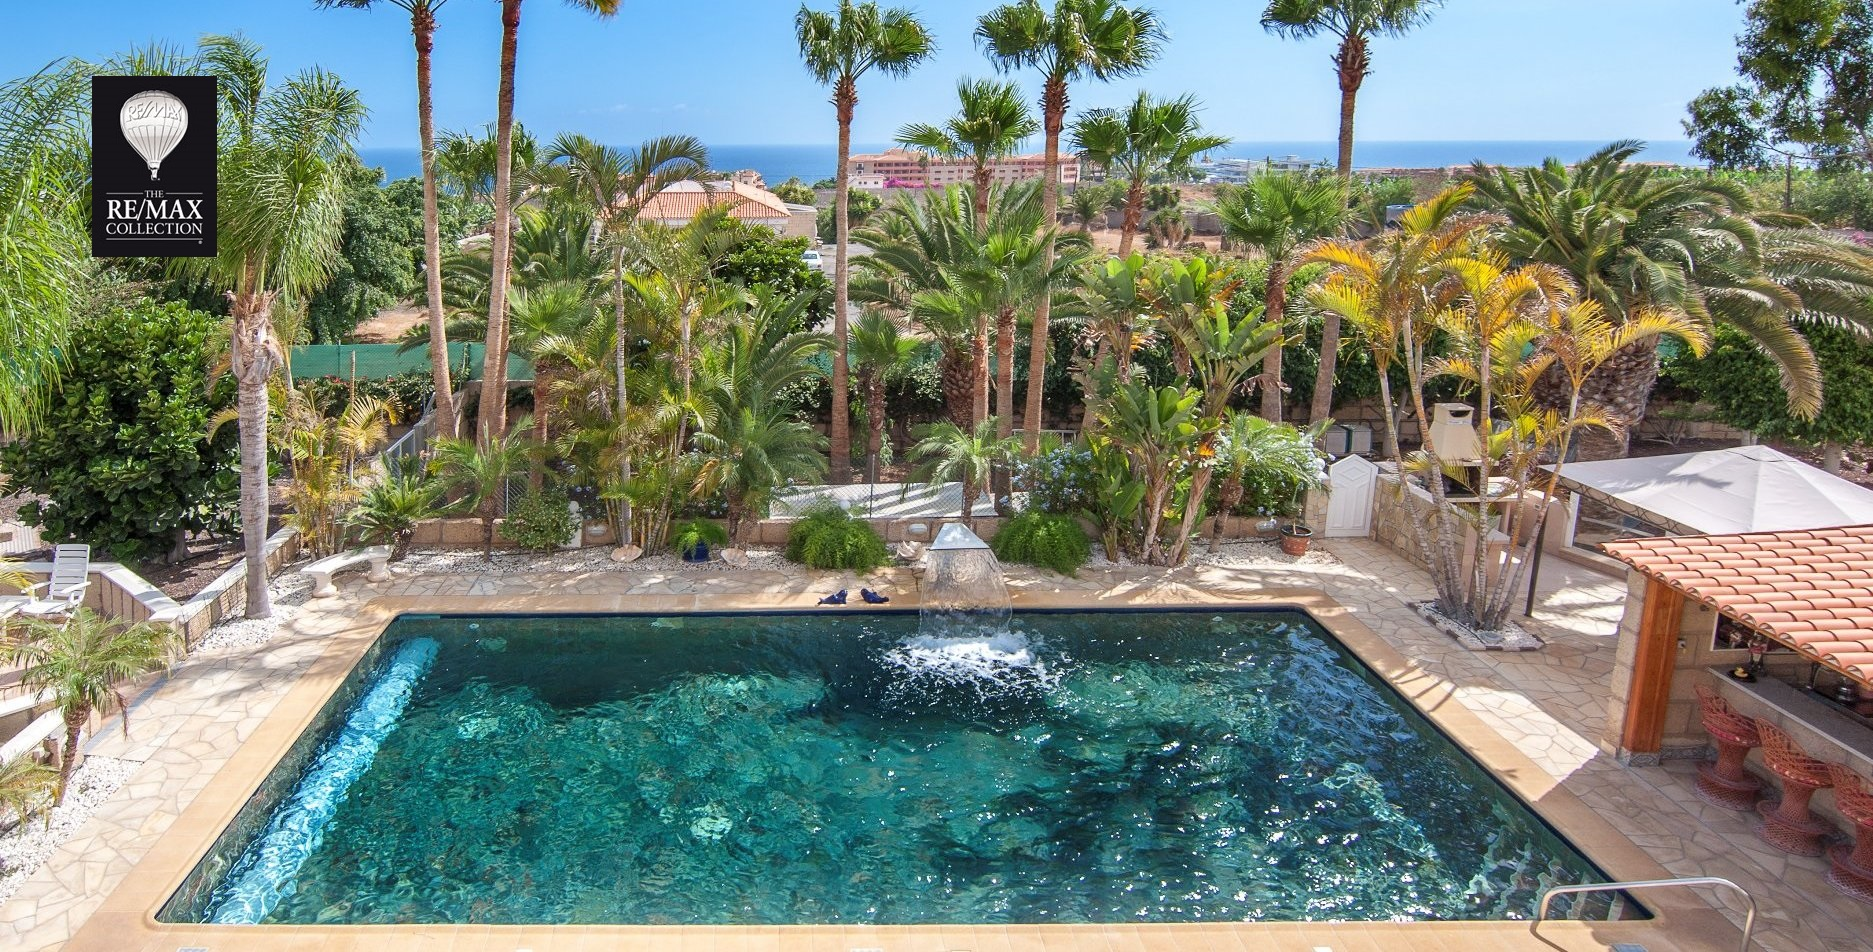 Luxury properties for sale in costa adeje real estate for Decor international adeje tenerife